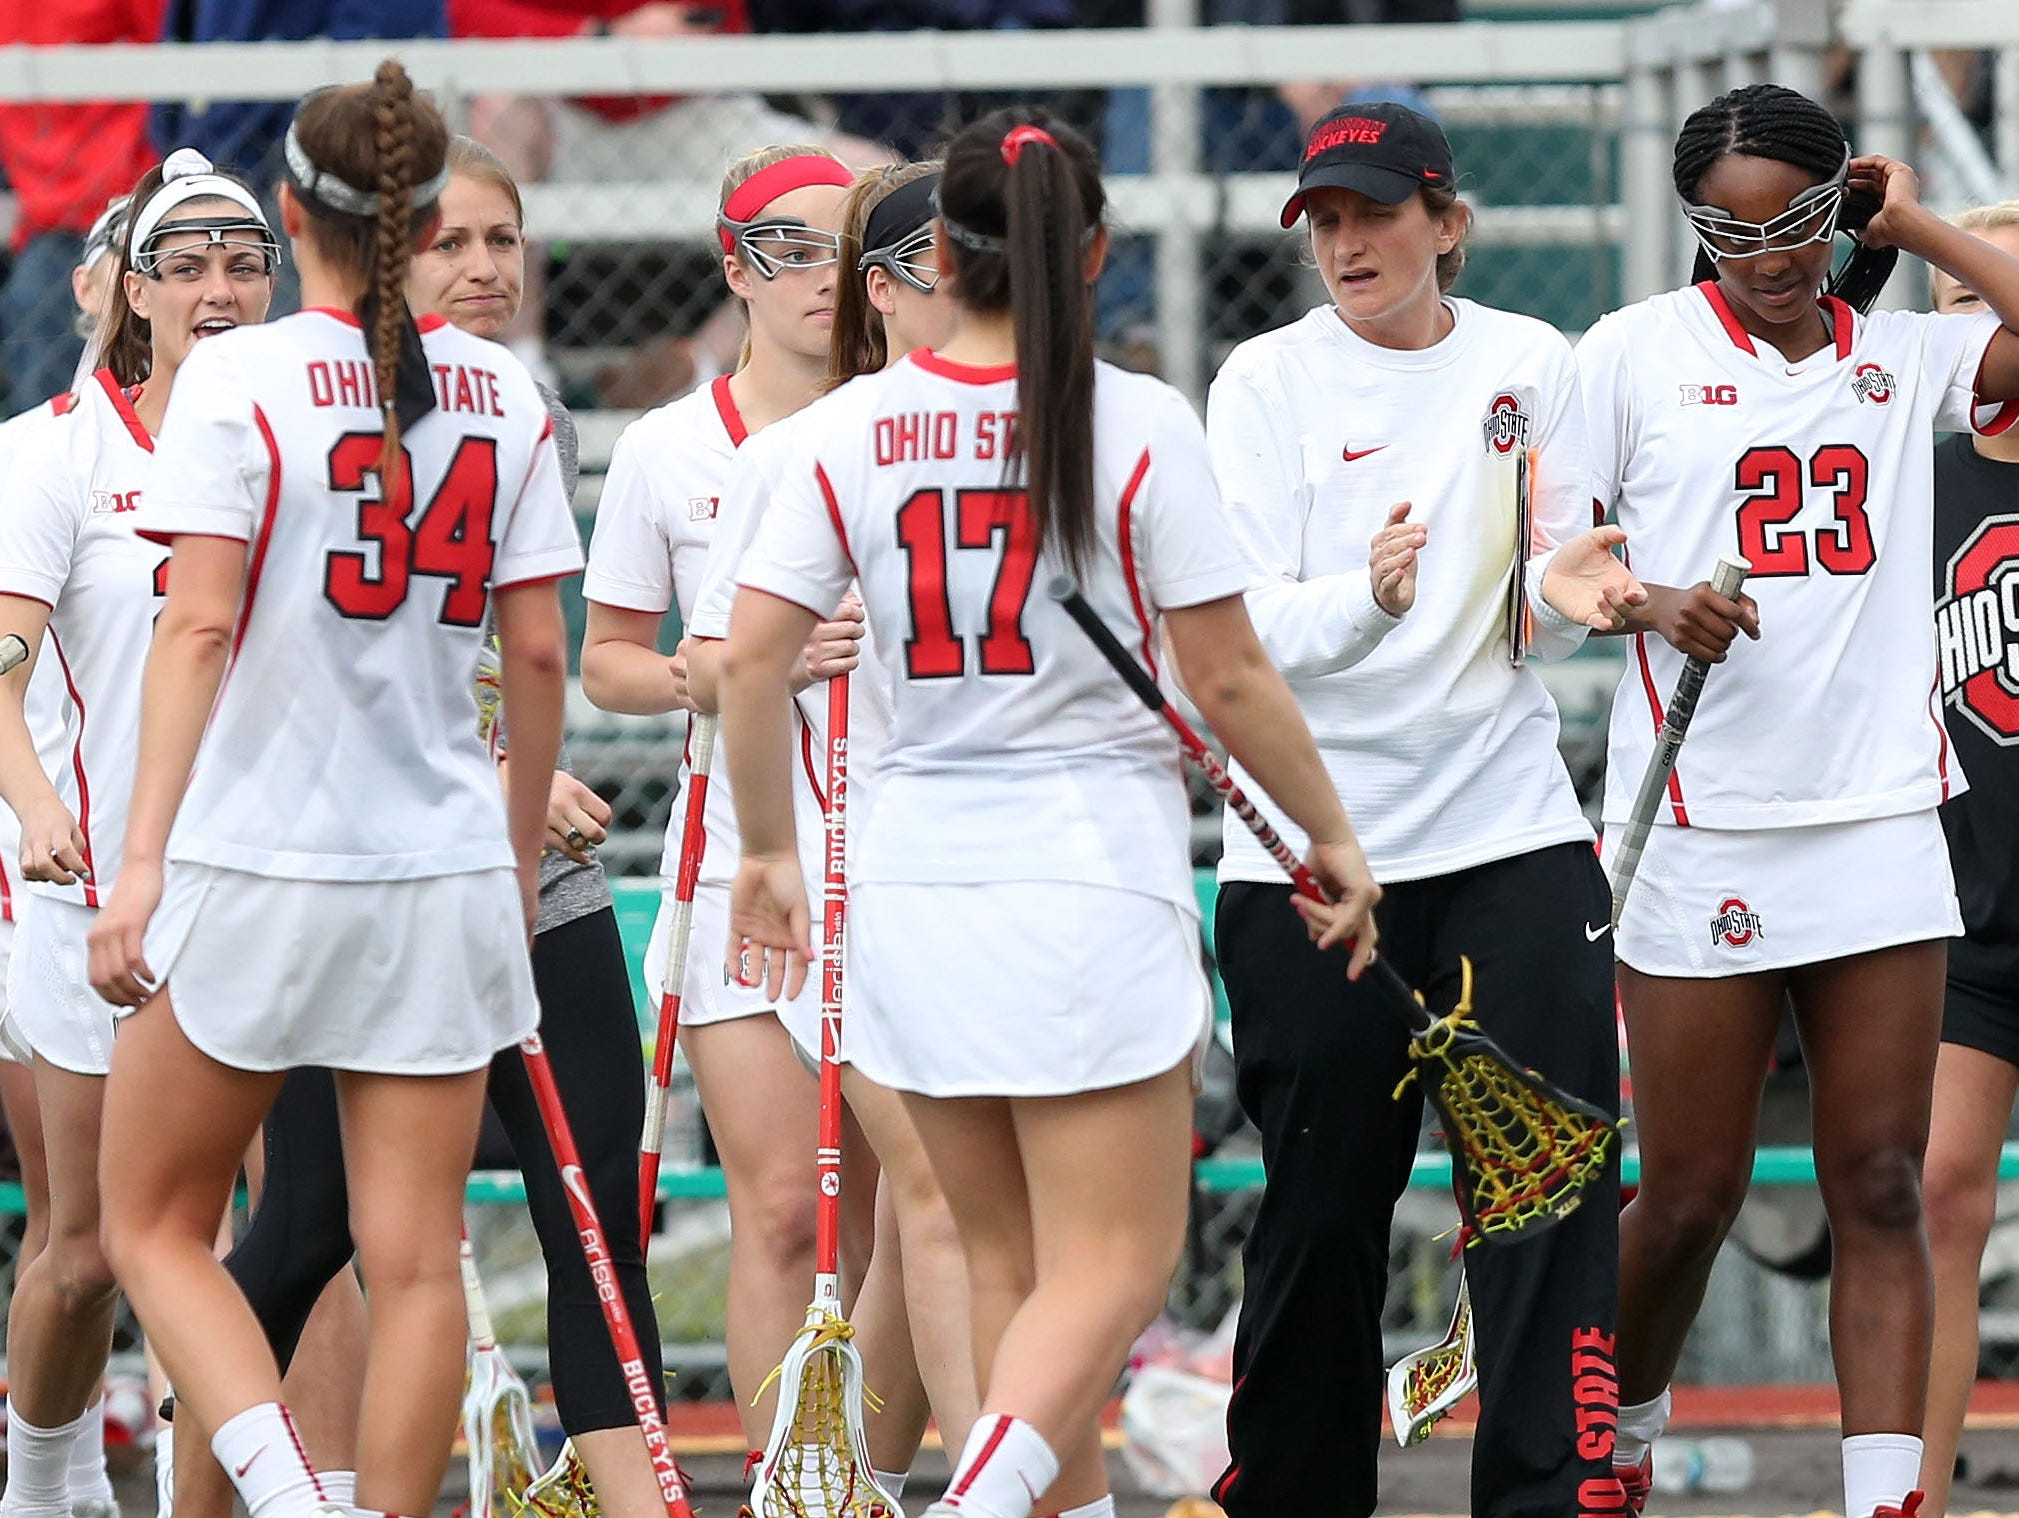 Ohio State girls lacrosse coach and Yorktown High School graduate Alexis Venechanos gets her team ready for game against Binghamton at Yorktown High School March 25, 2016. Ohio State won the game 10-5.